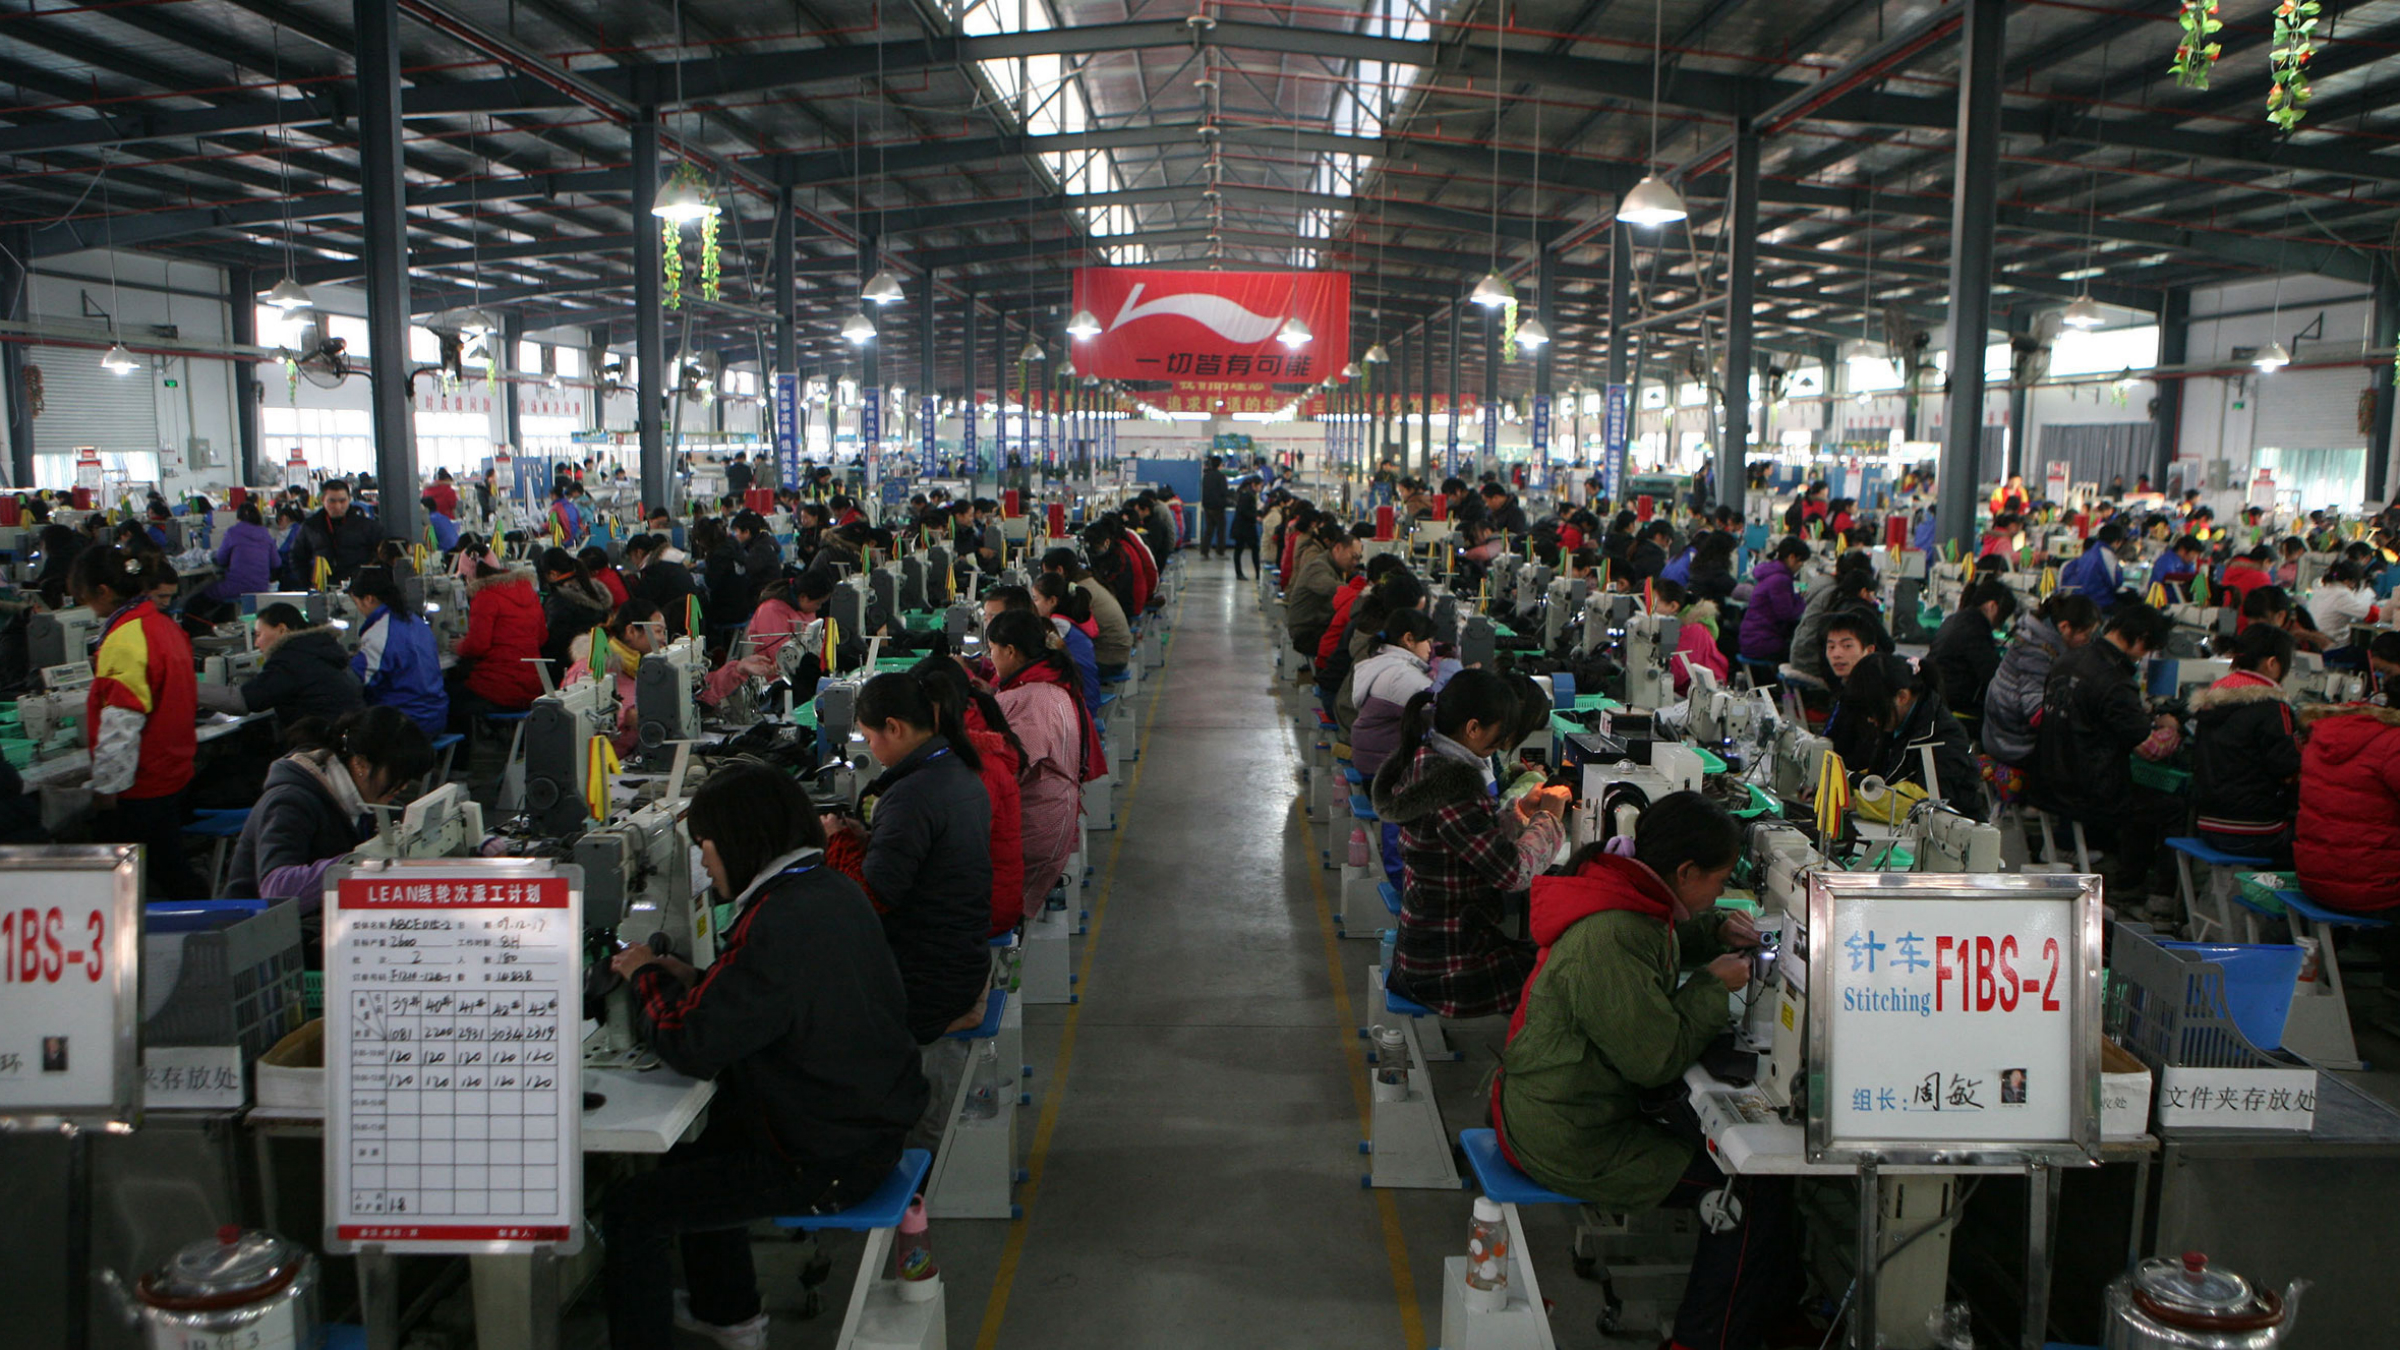 Vietnamese footwear manufacturers, such as this plant in Hubei Province, have been losing ground to lower cost competitors in Vietnam.